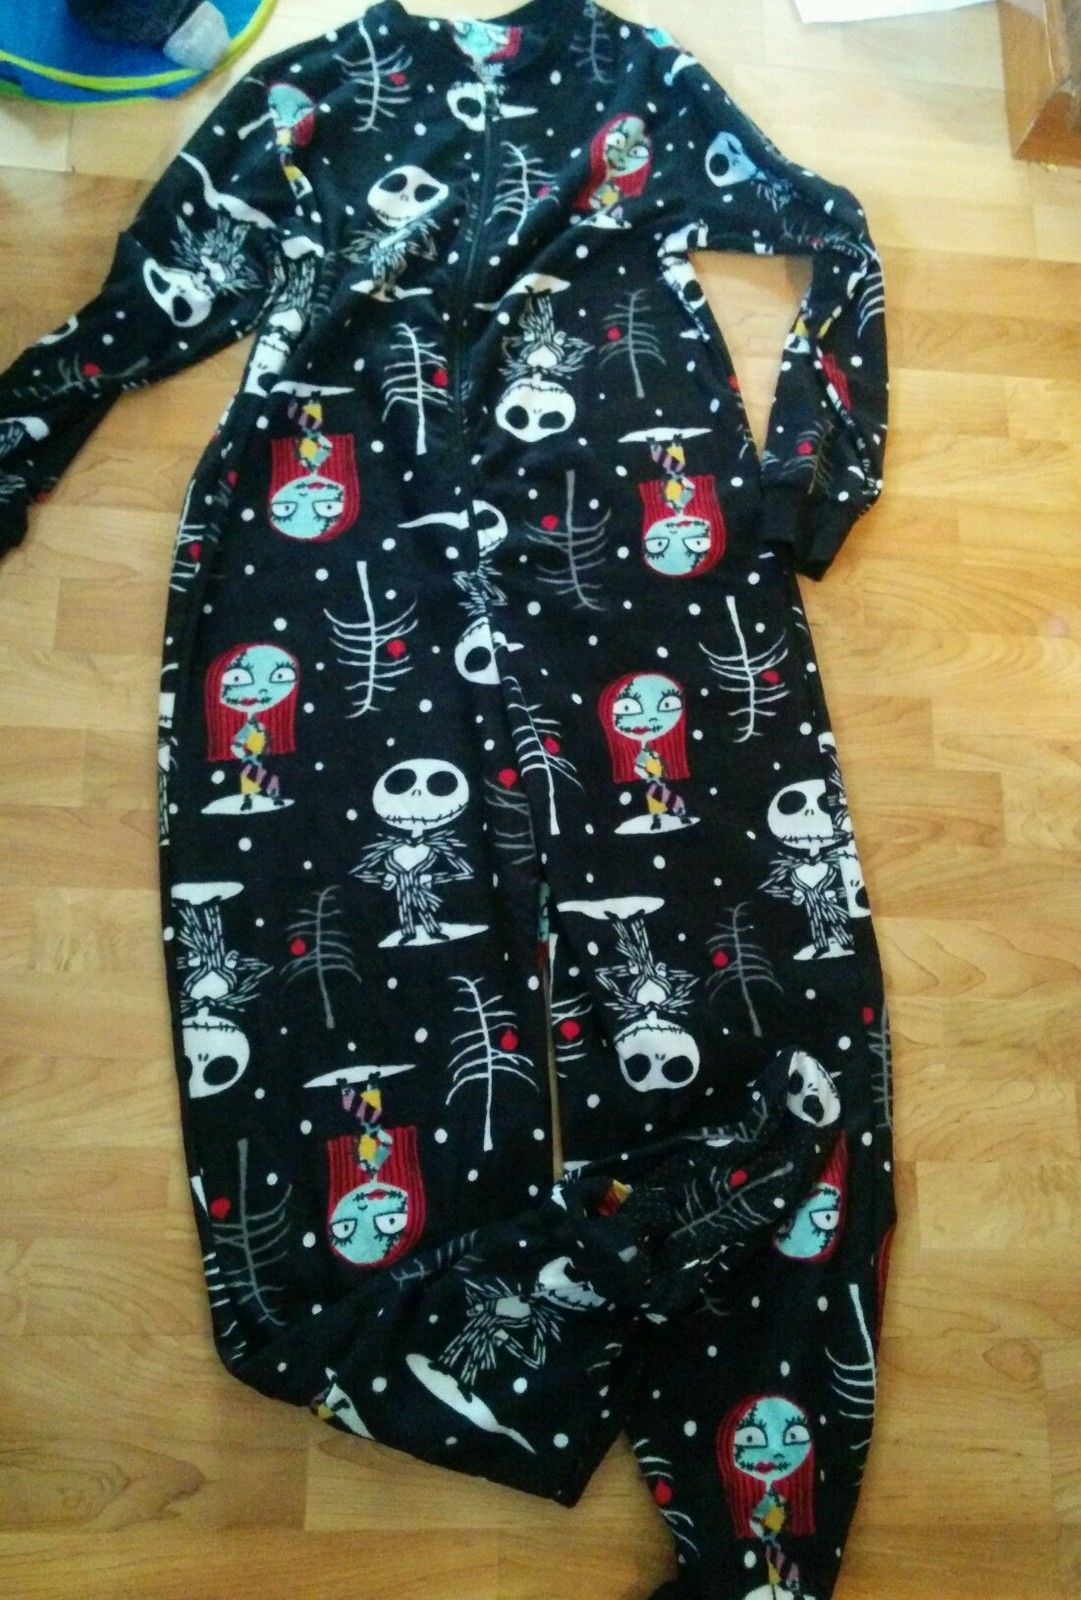 Disney Nightmare Before Christmas Adult Footed Pajamas | eBay ...